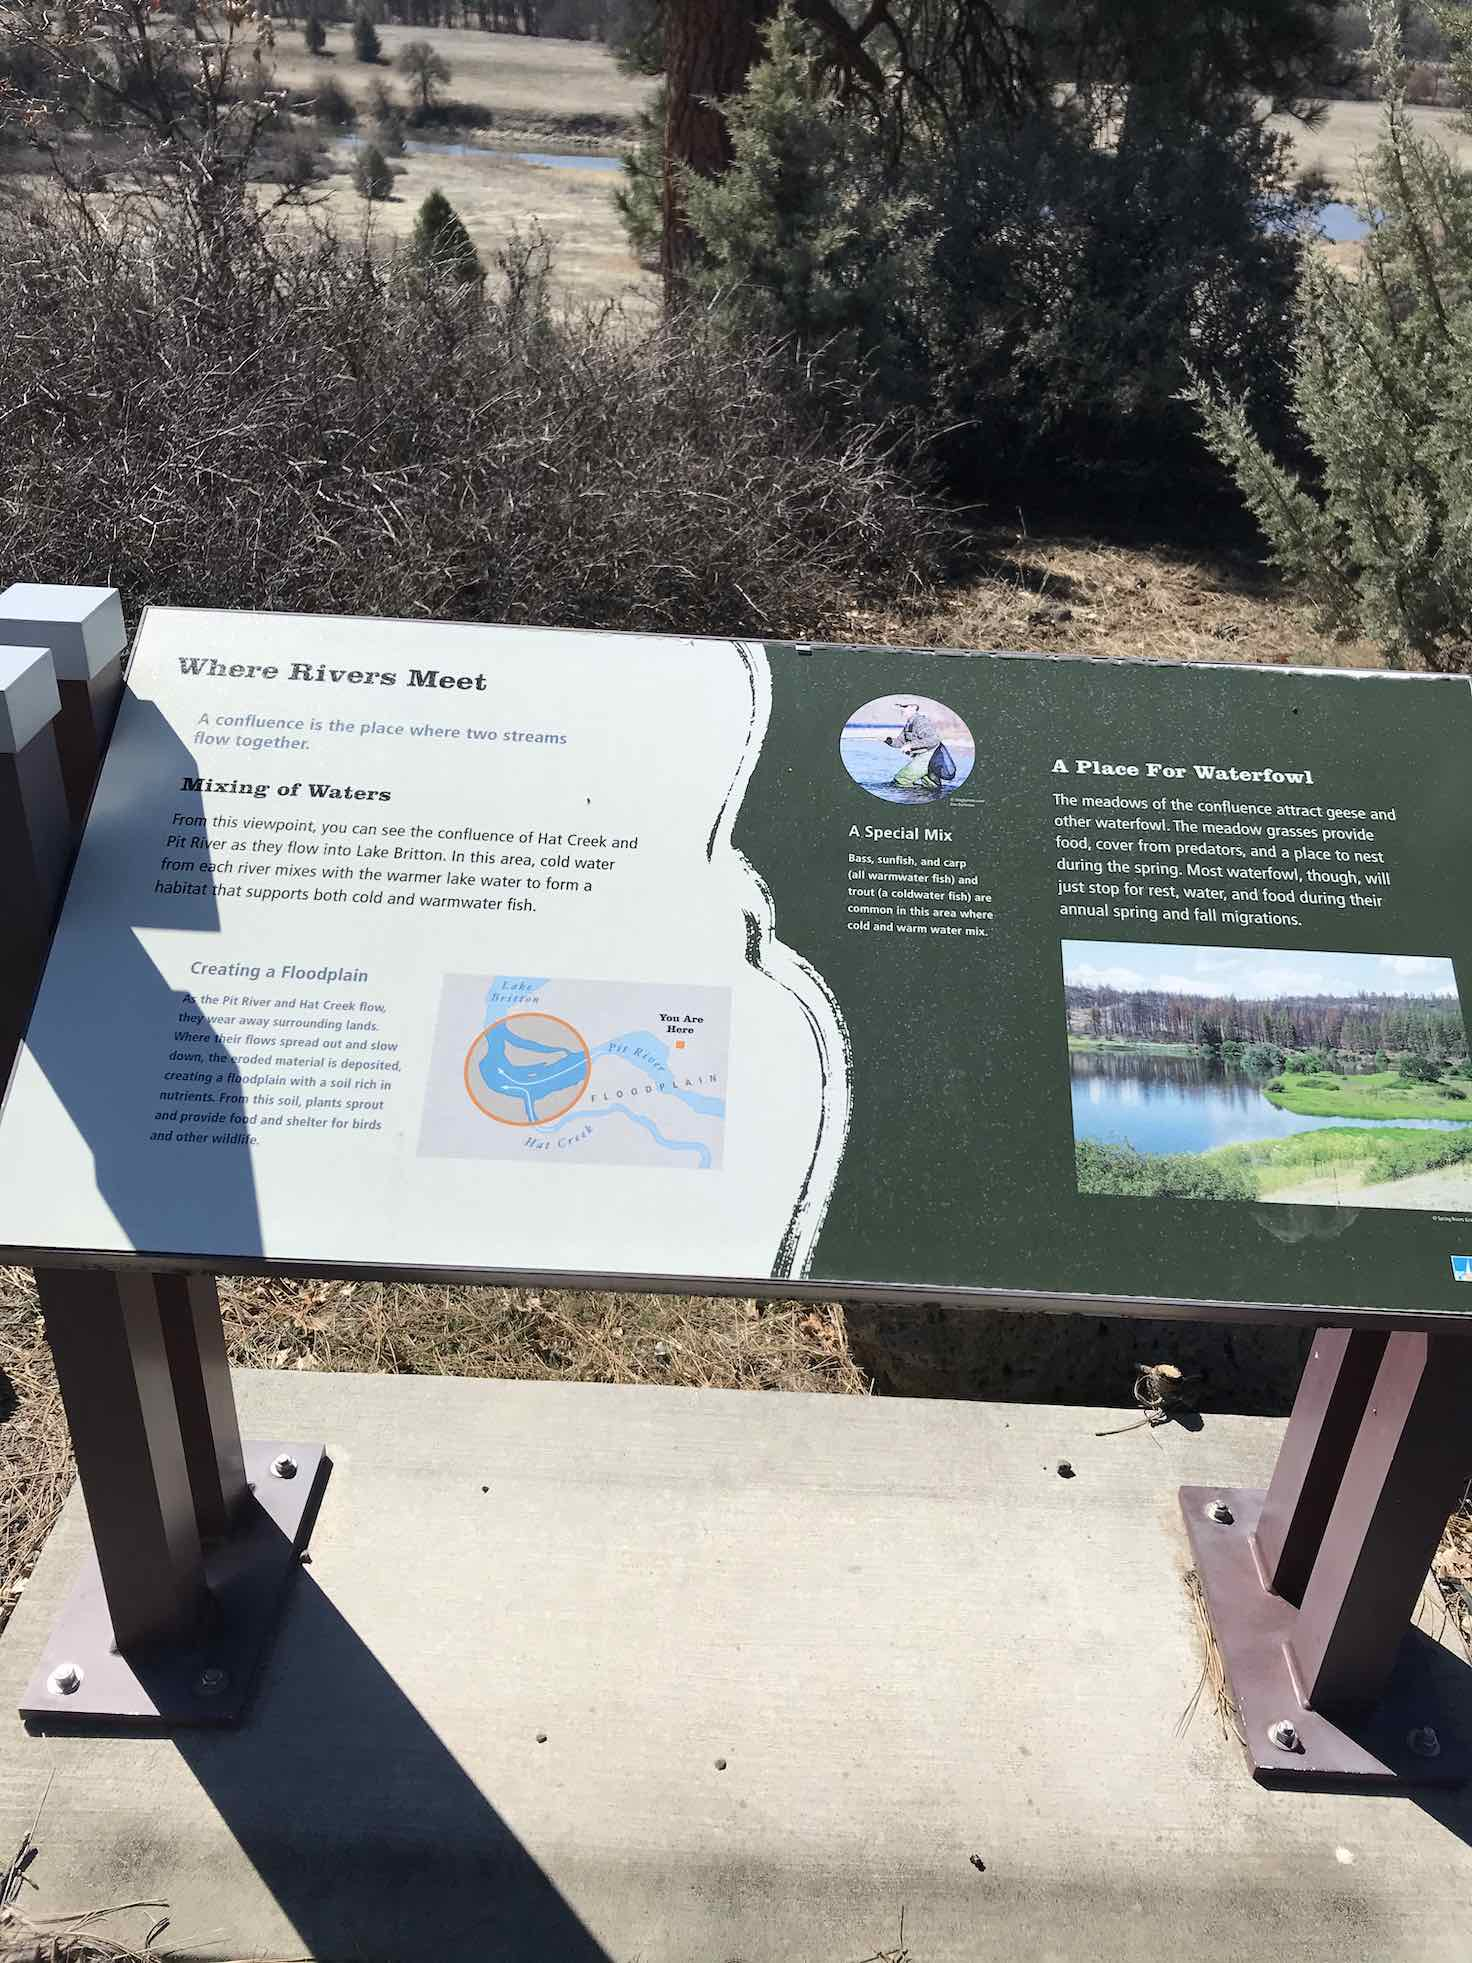 Kiosk sign at park at the confluence of the Pit river and Hat Creek.